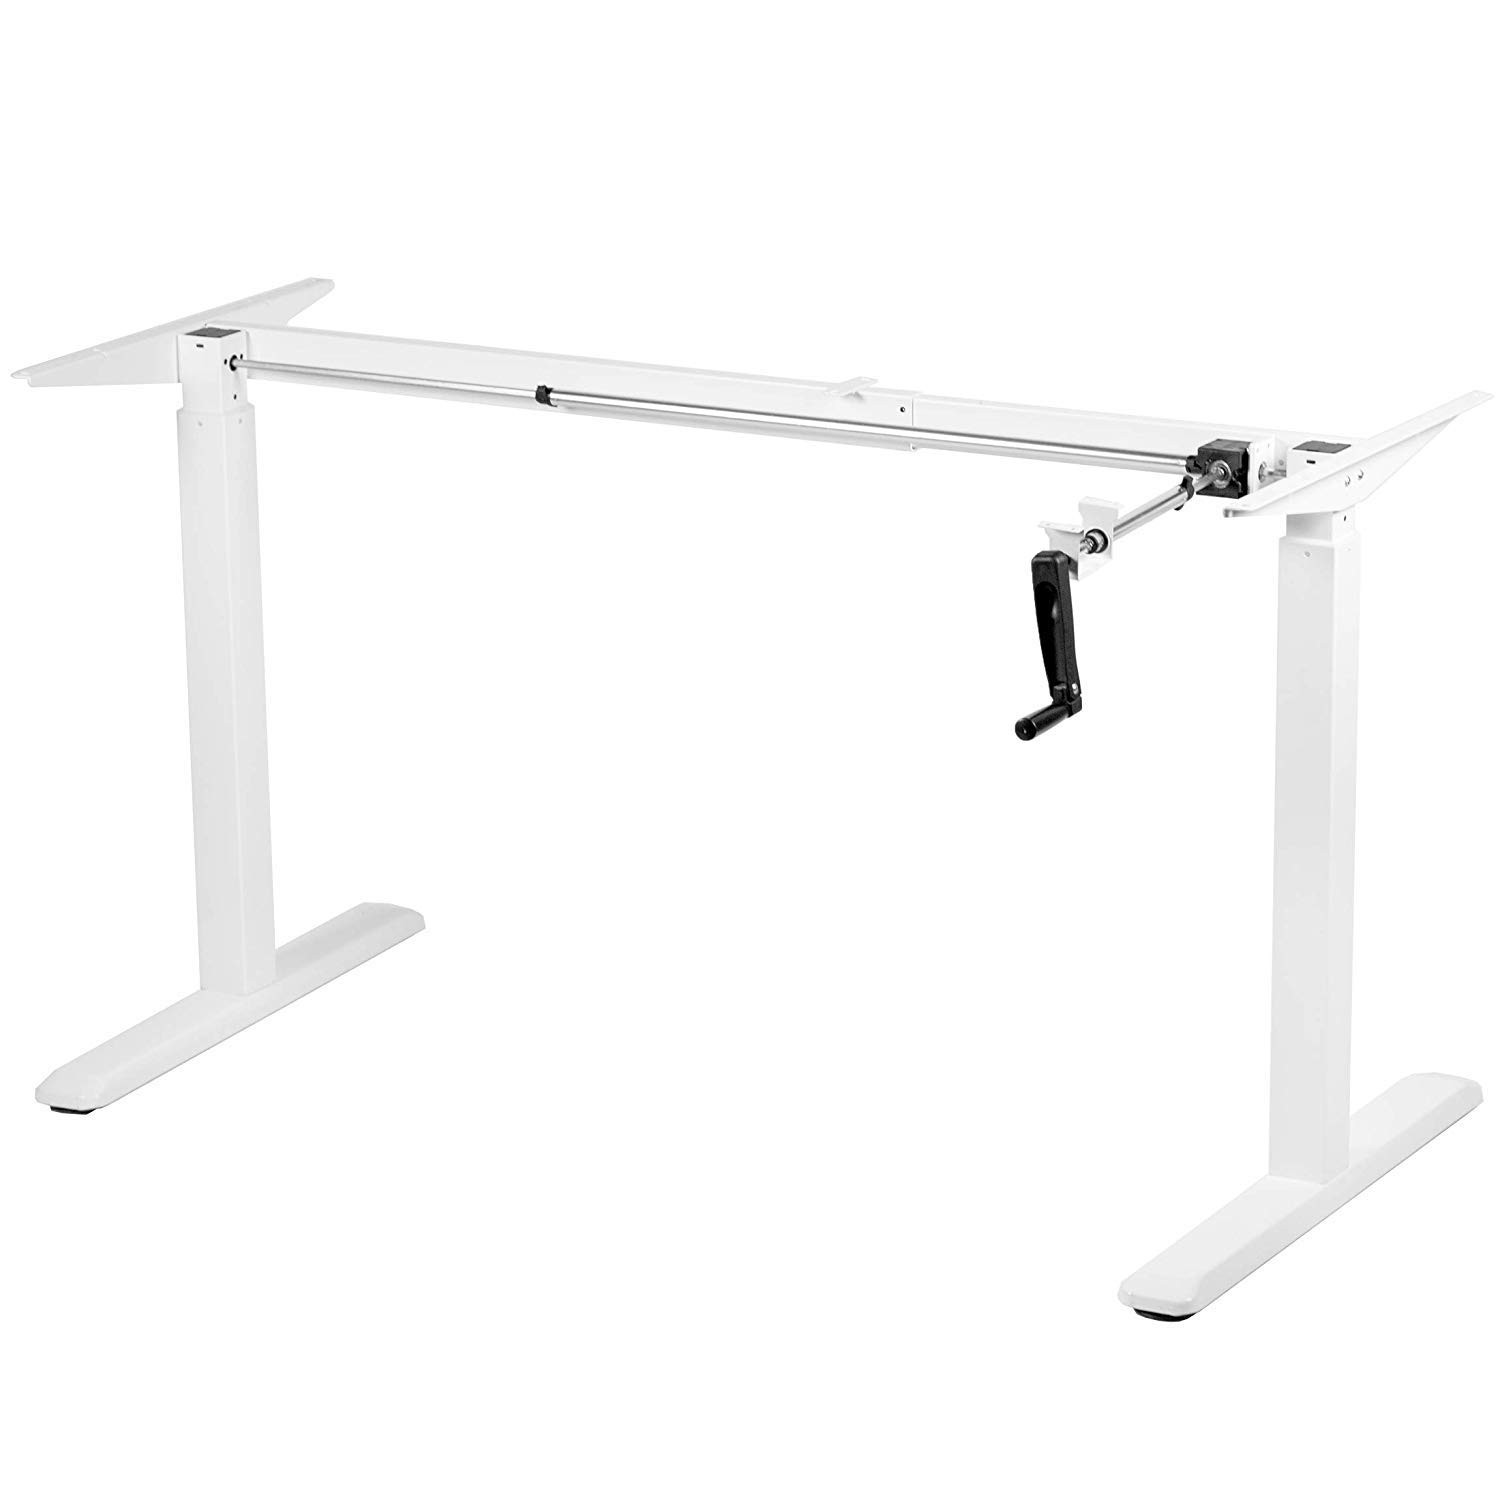 FS-DR48C-WH White Manual Crank Desk Frame